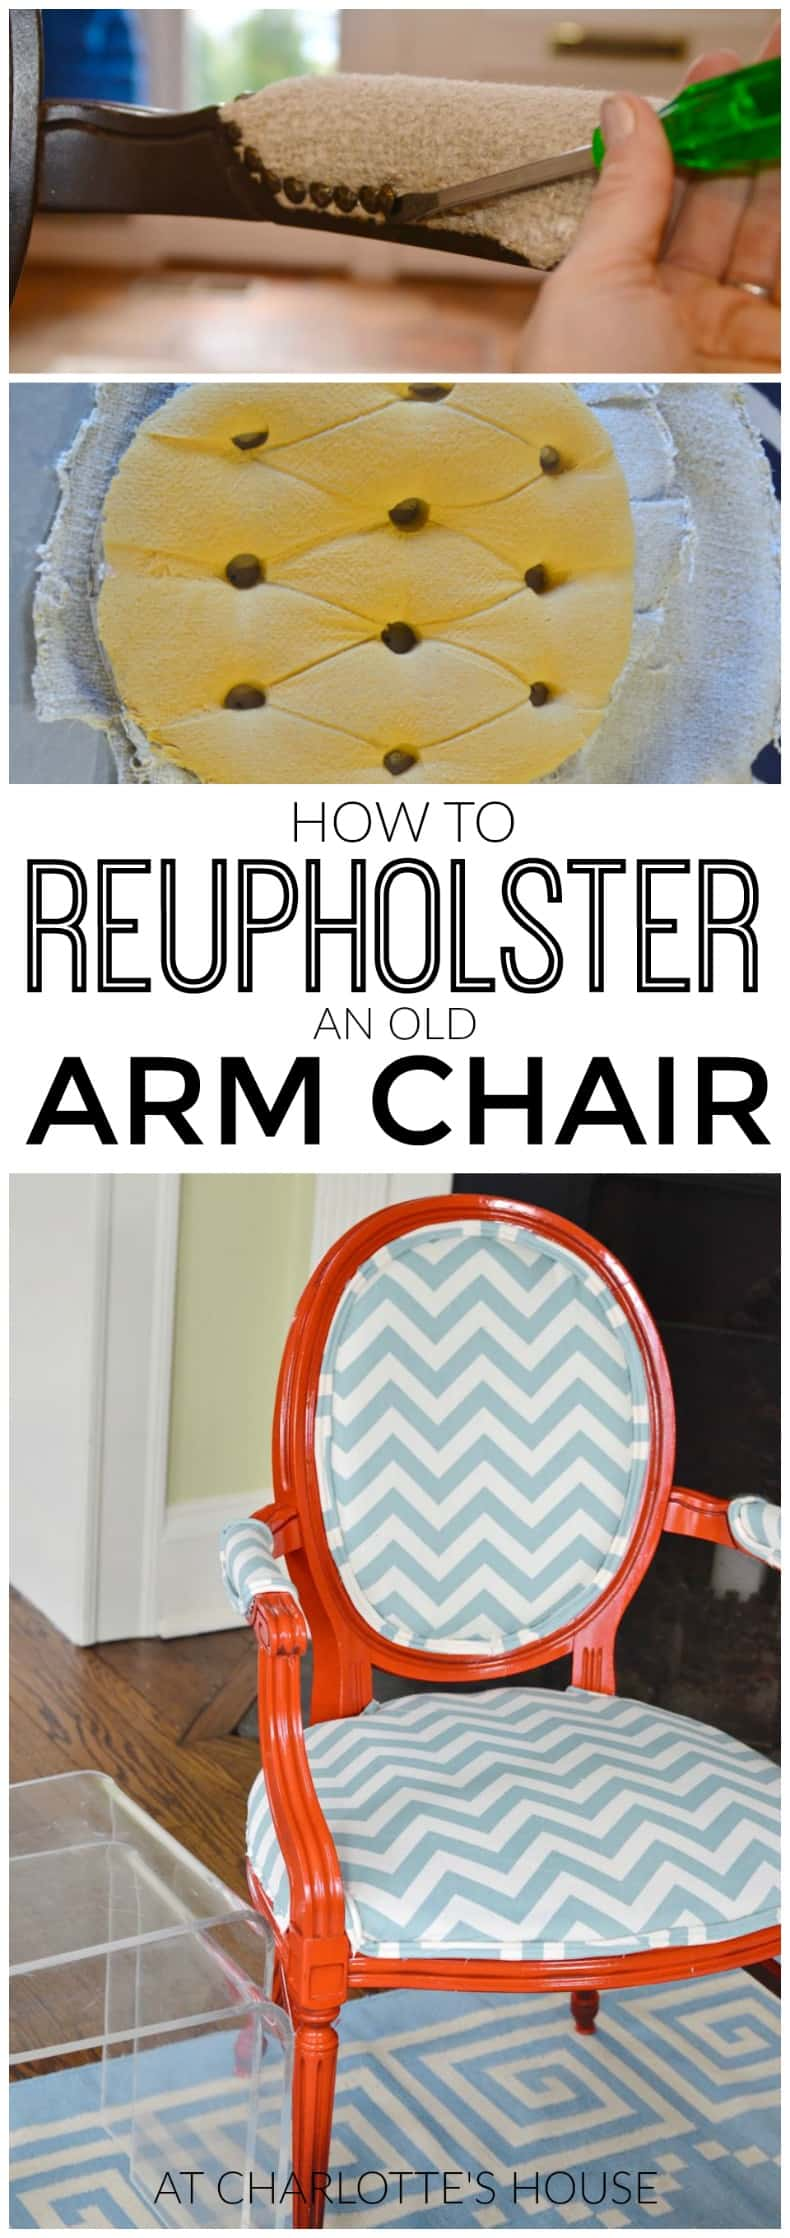 how to reupholster old armchairs with colorful new fabric.